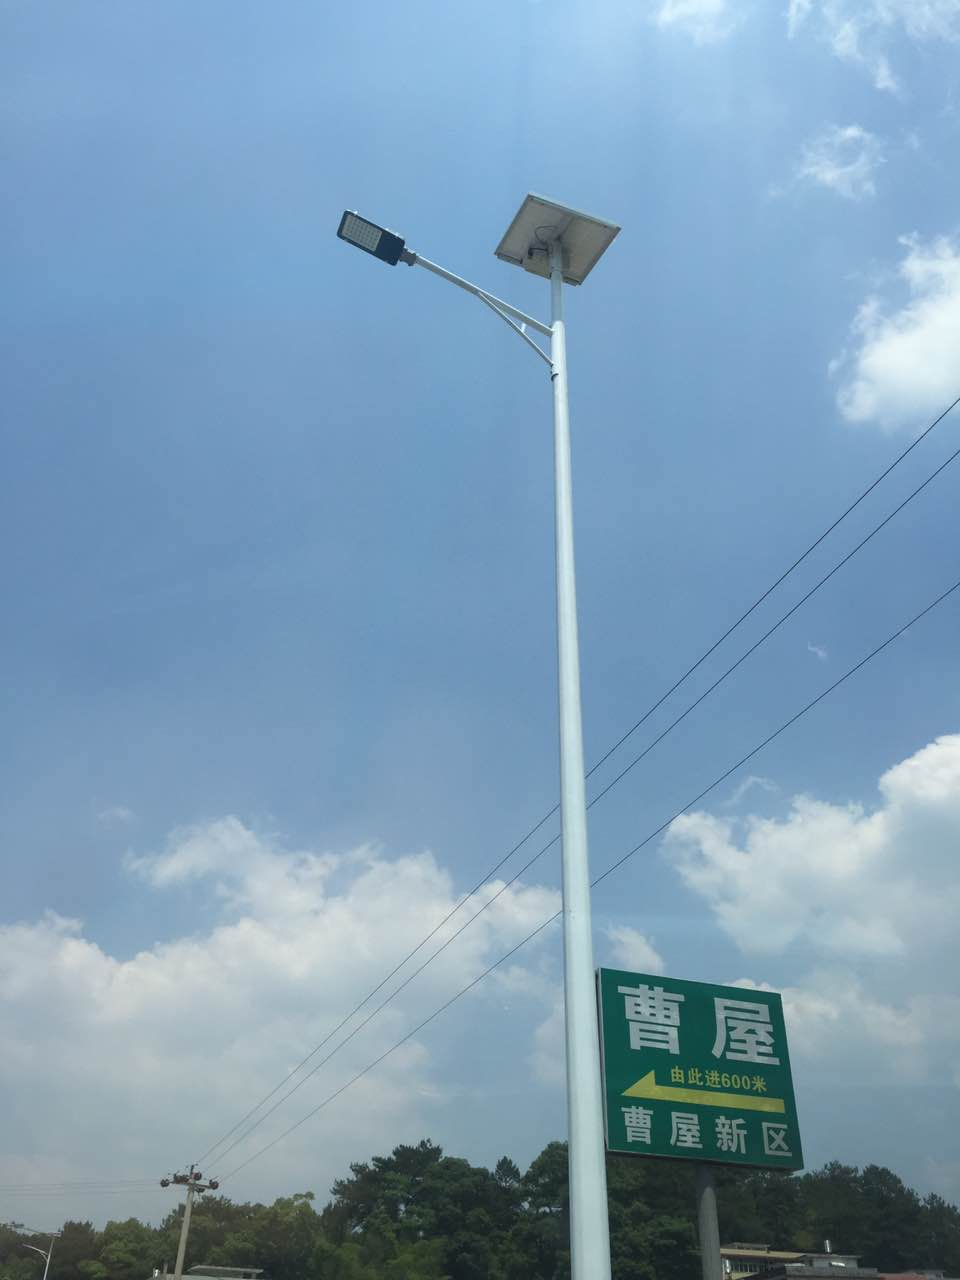 High quality Integrated 40W solar panel lithium battery IP6512W led street light for rural area